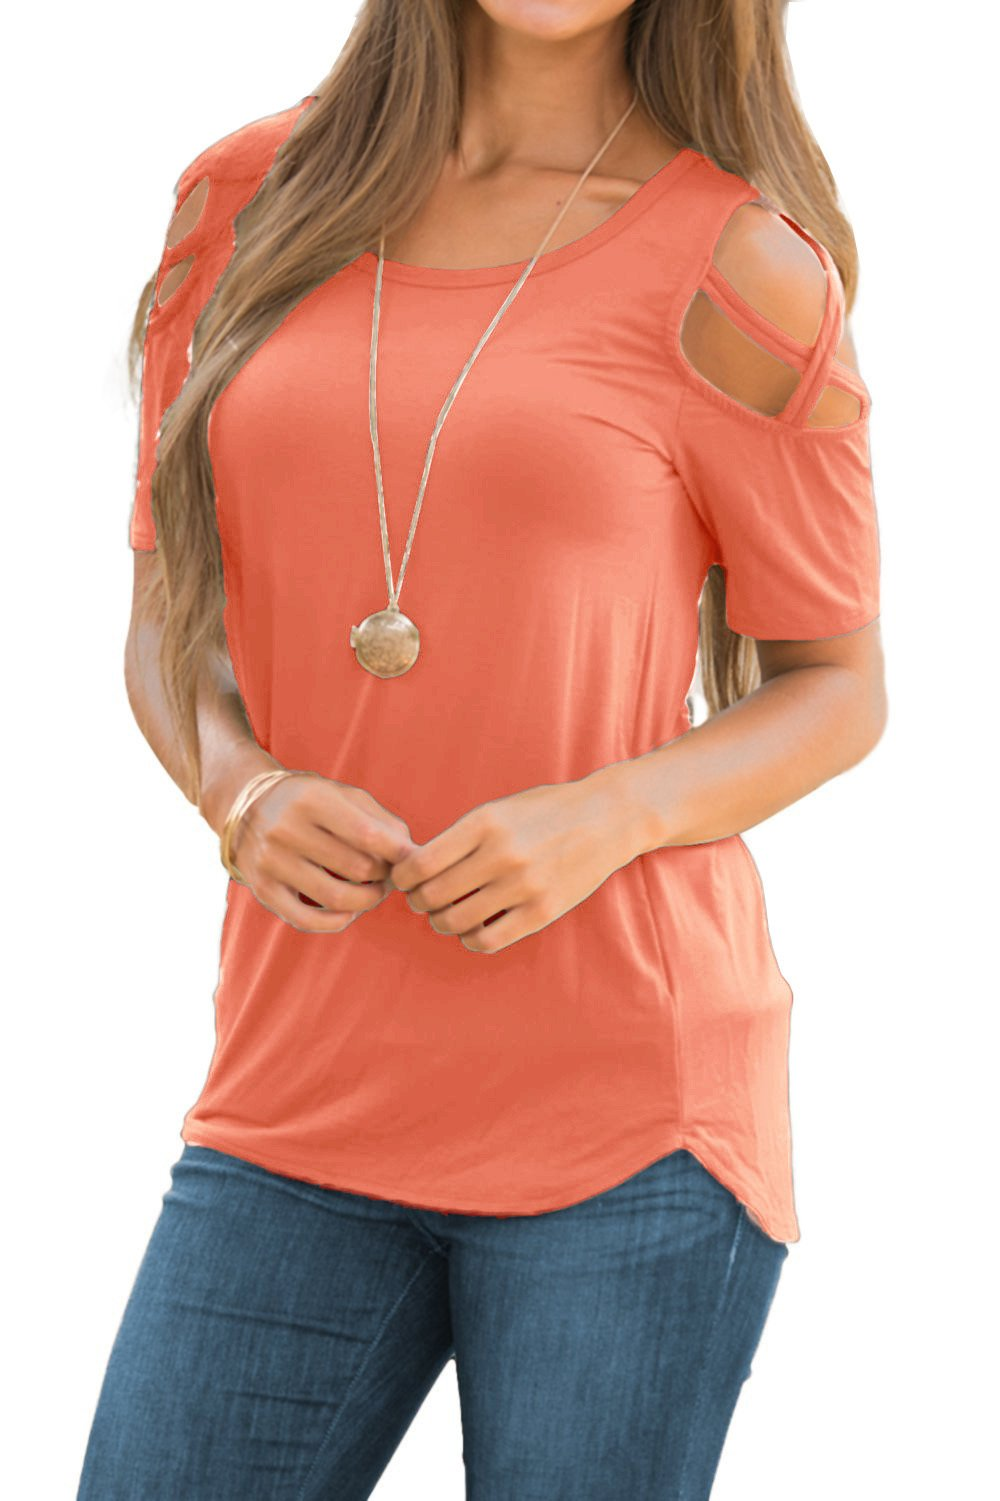 Adreamly Women's Casual Summer Short Sleeve Loose Strappy Cold Shoulder Tops Basic T Shirts Blouses Coral Pink Medium